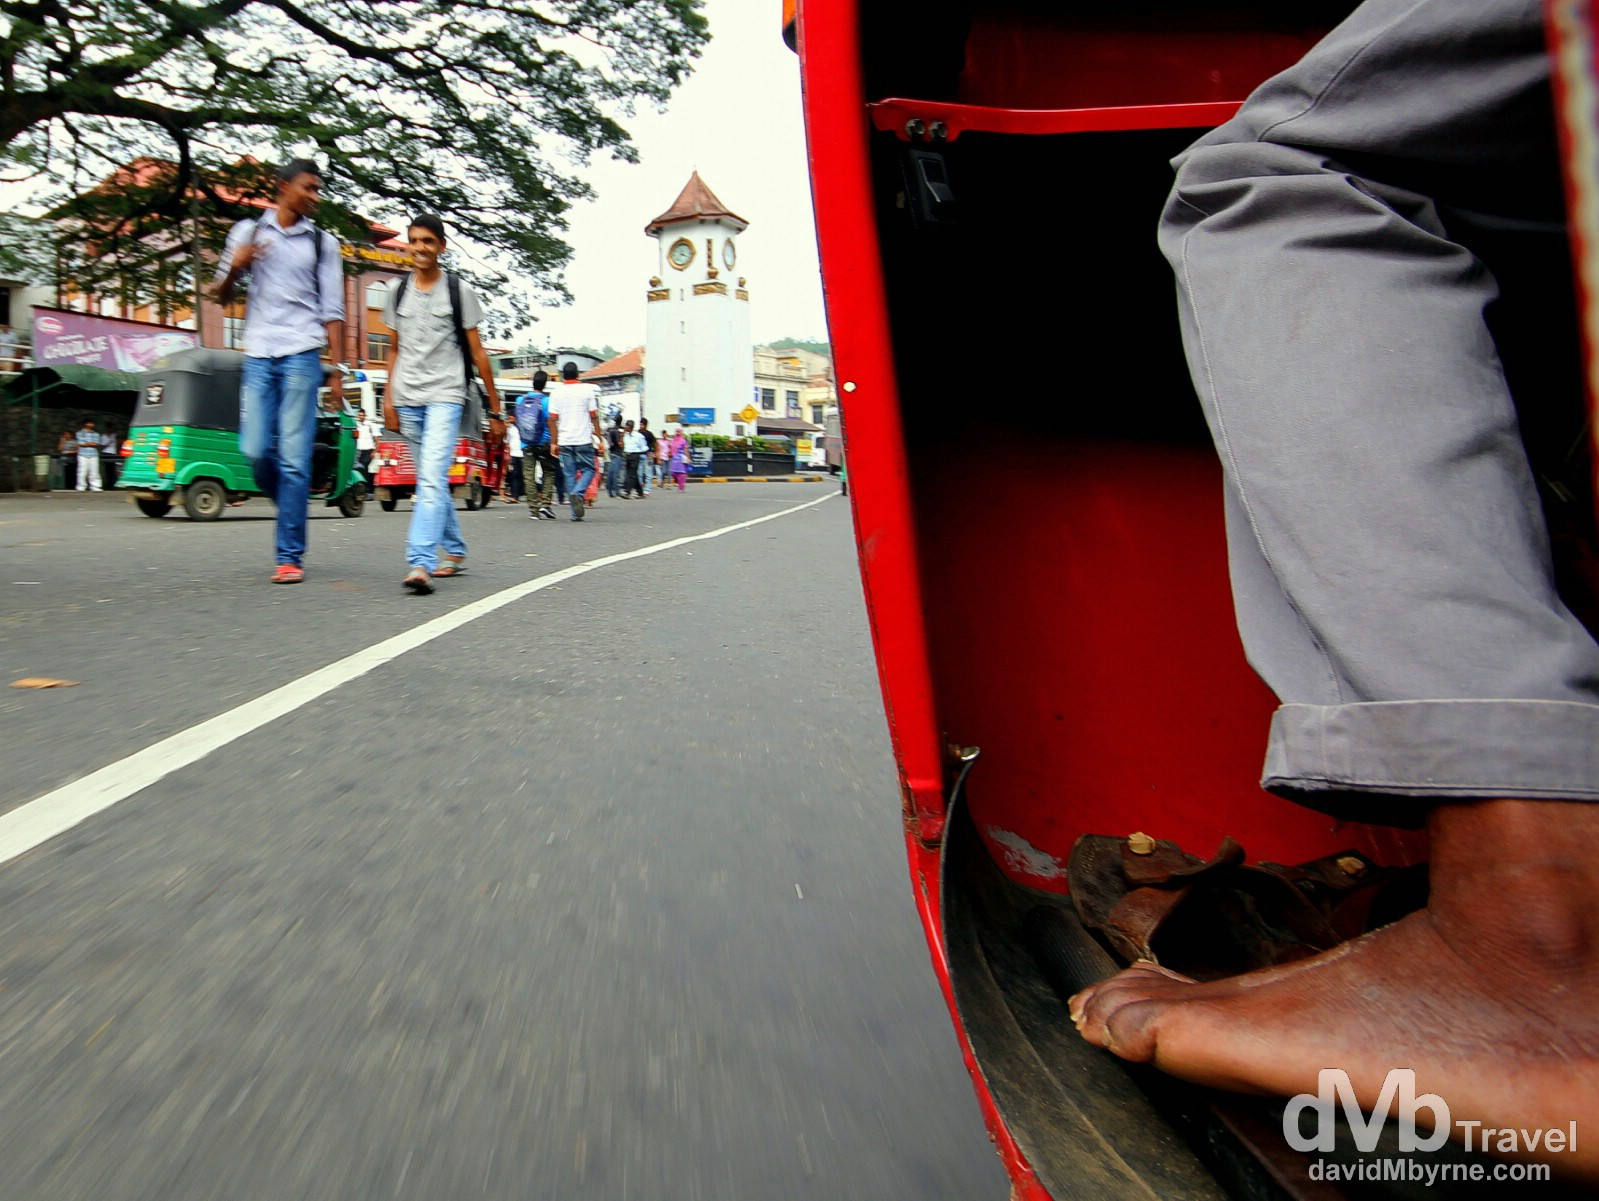 Riding a tuk-tuk on the streets of Kandy, Sri Lanka. September 9th 2012.